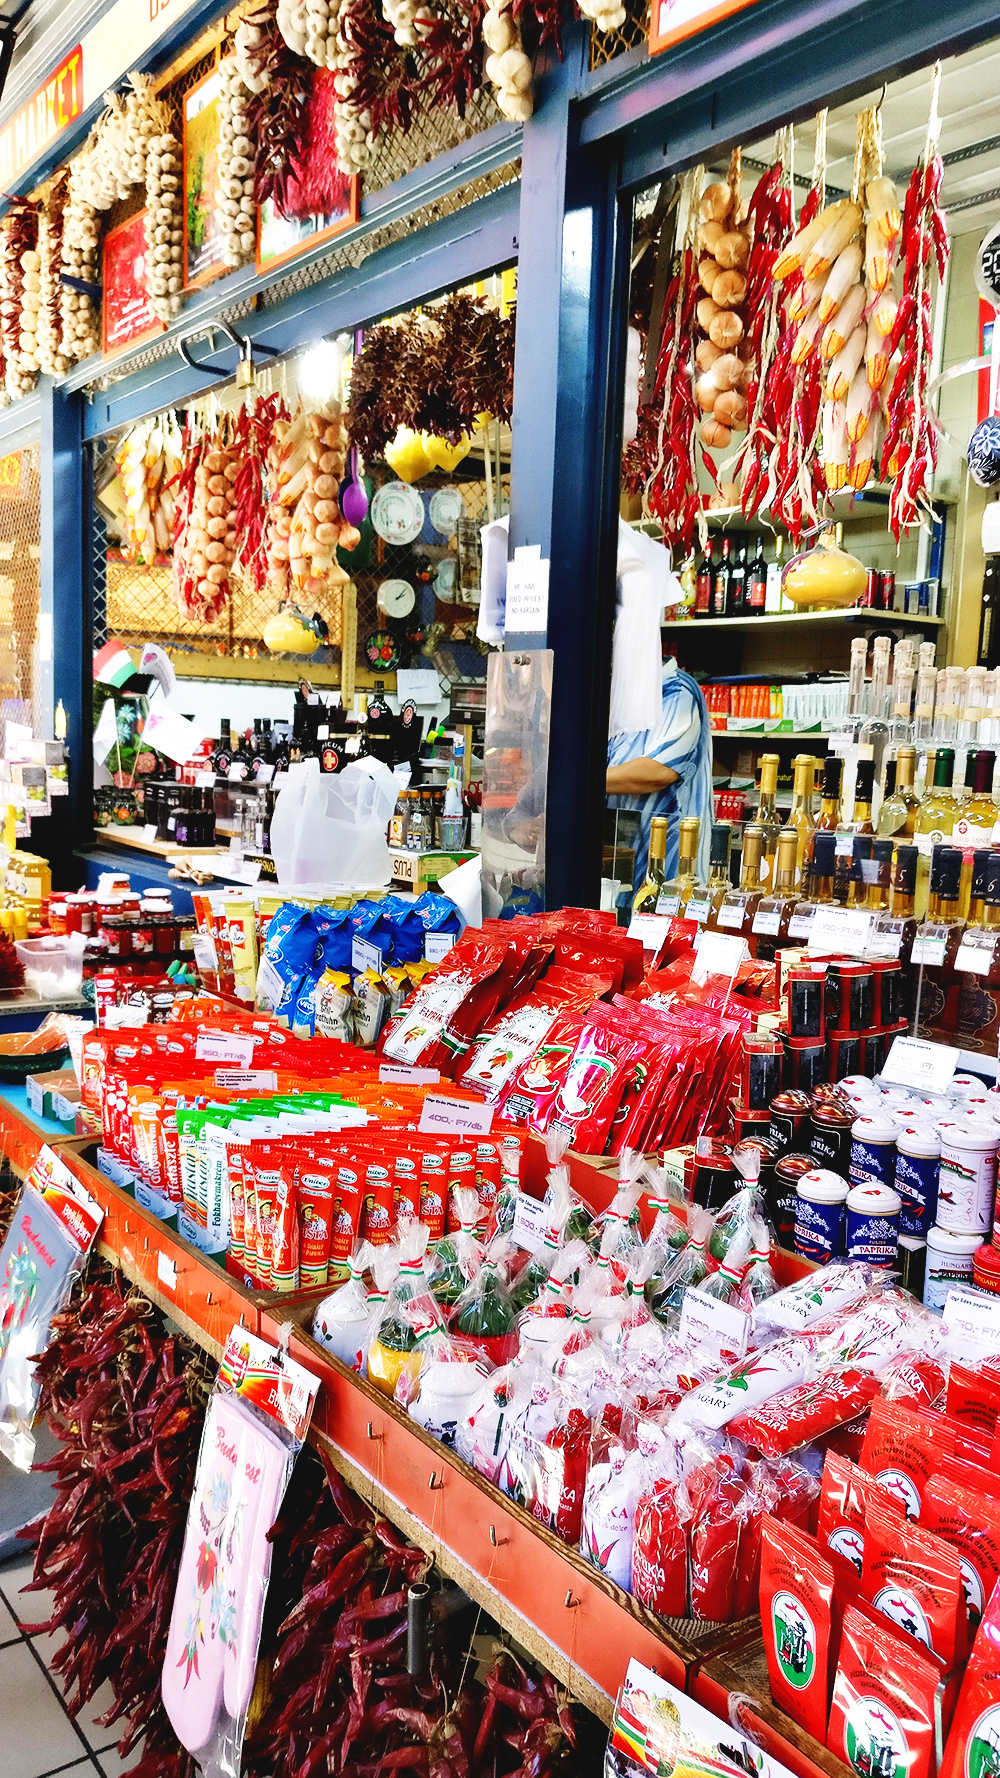 Discover the Great Market Hall and buy some paprika as a souvenir - Budapest bucket list - Top things to do in Budapest | Aliz's Wonderland #travel #Budapest #bucketlist #Budapestbucketlist #printable